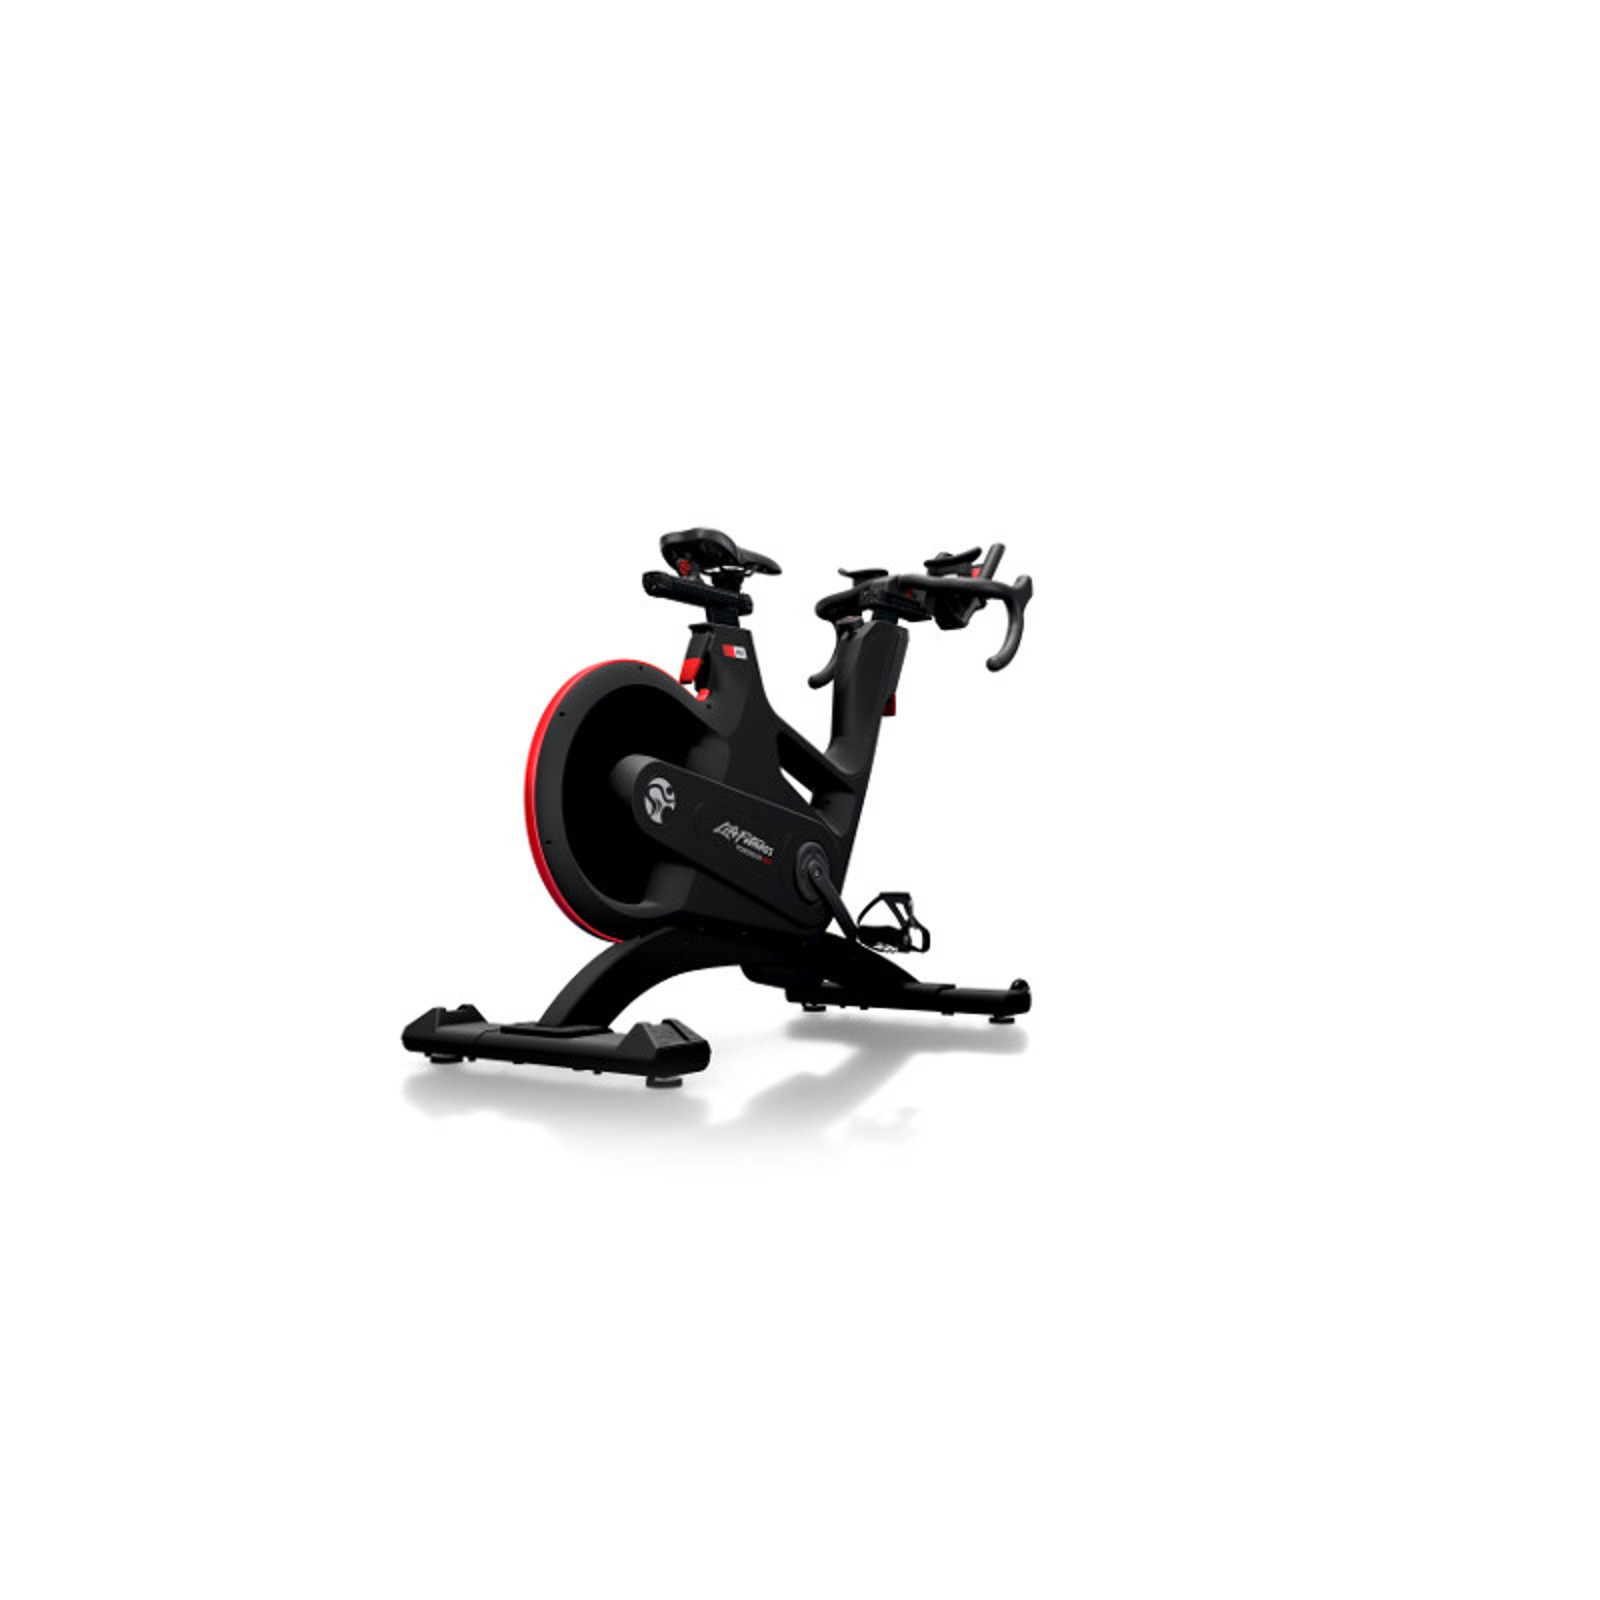 Life Fitness Indoor Bike IC8 Power Trainer günstig kaufen - Sport-Tiedje